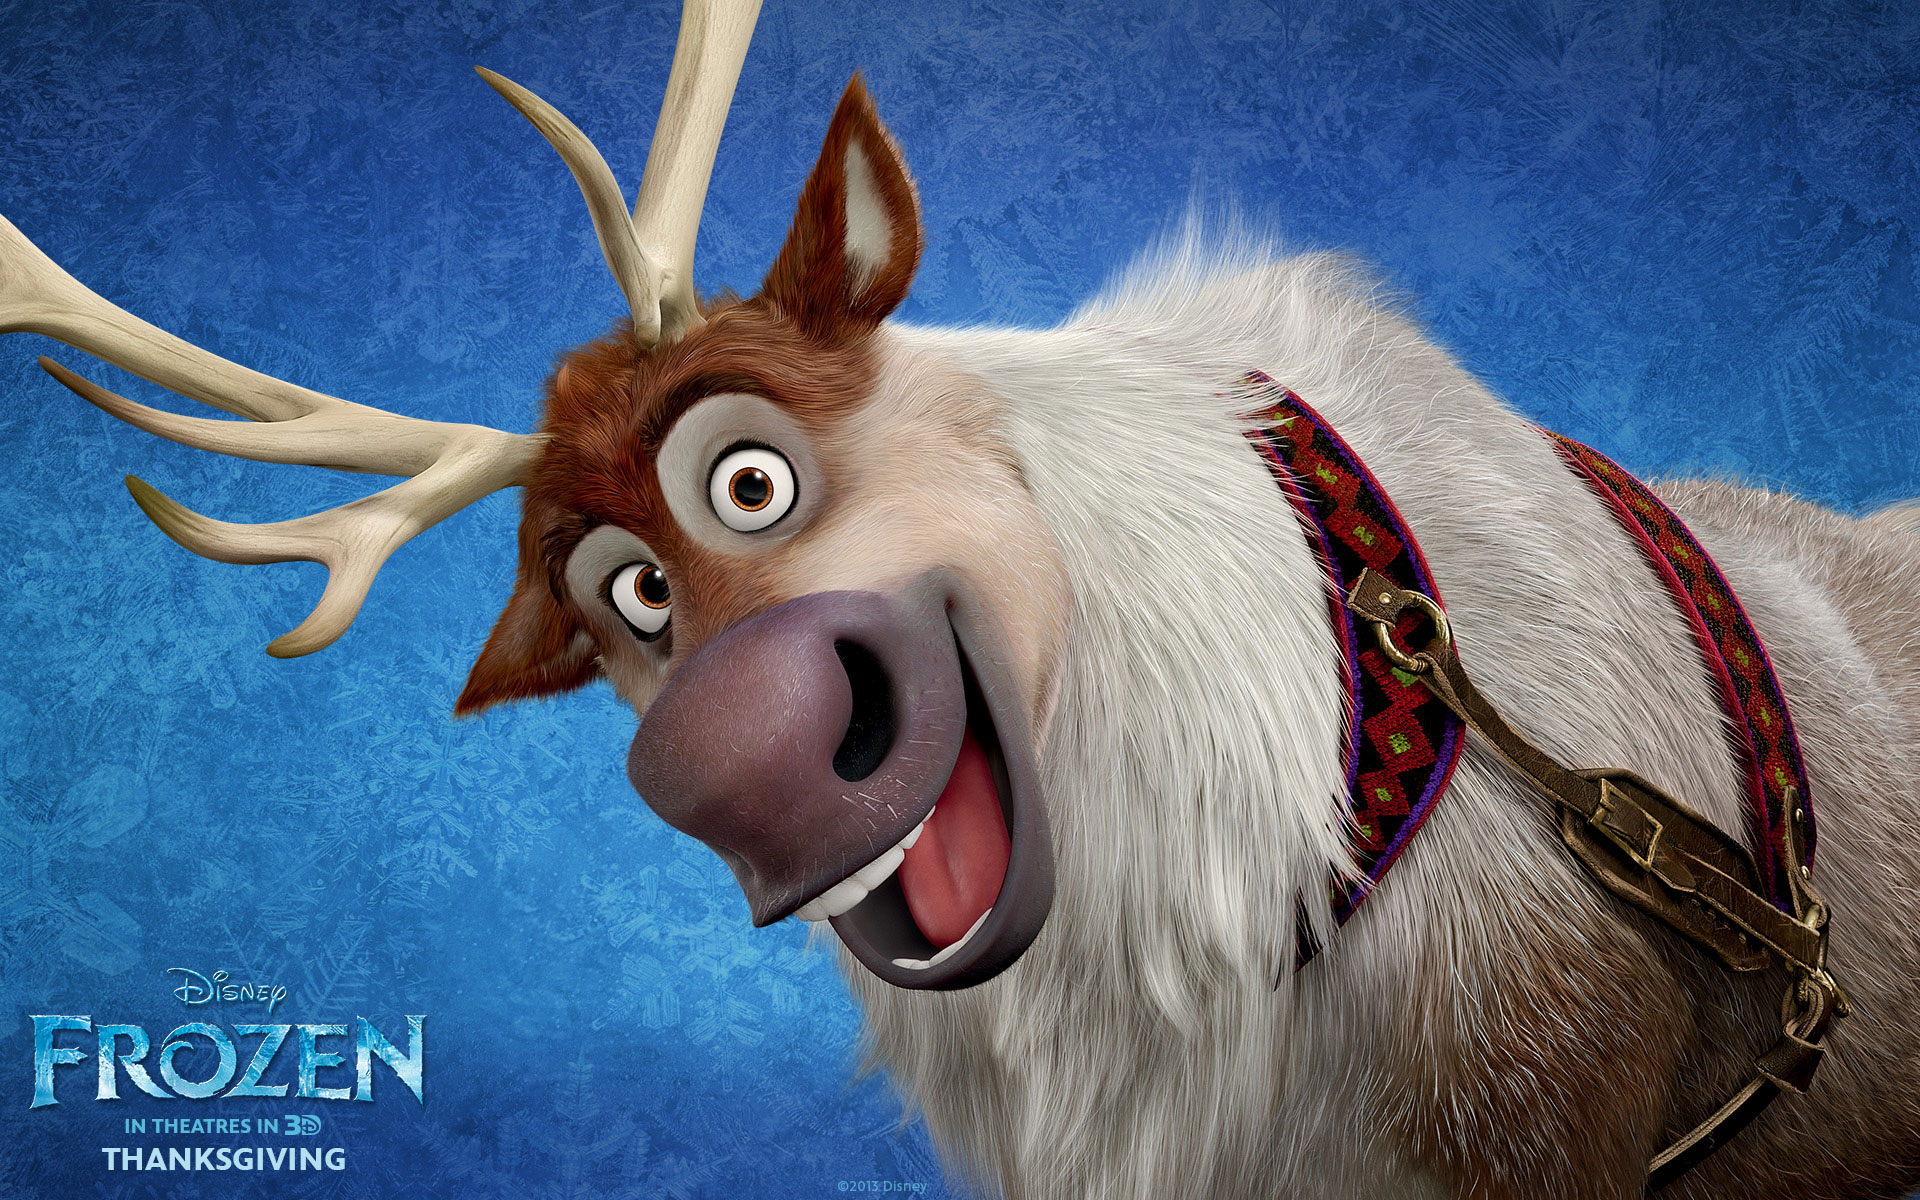 Frozen 2013 Movie Wallpapers [HD] & Facebook Timeline ... Disney Frozen Sven Wallpaper